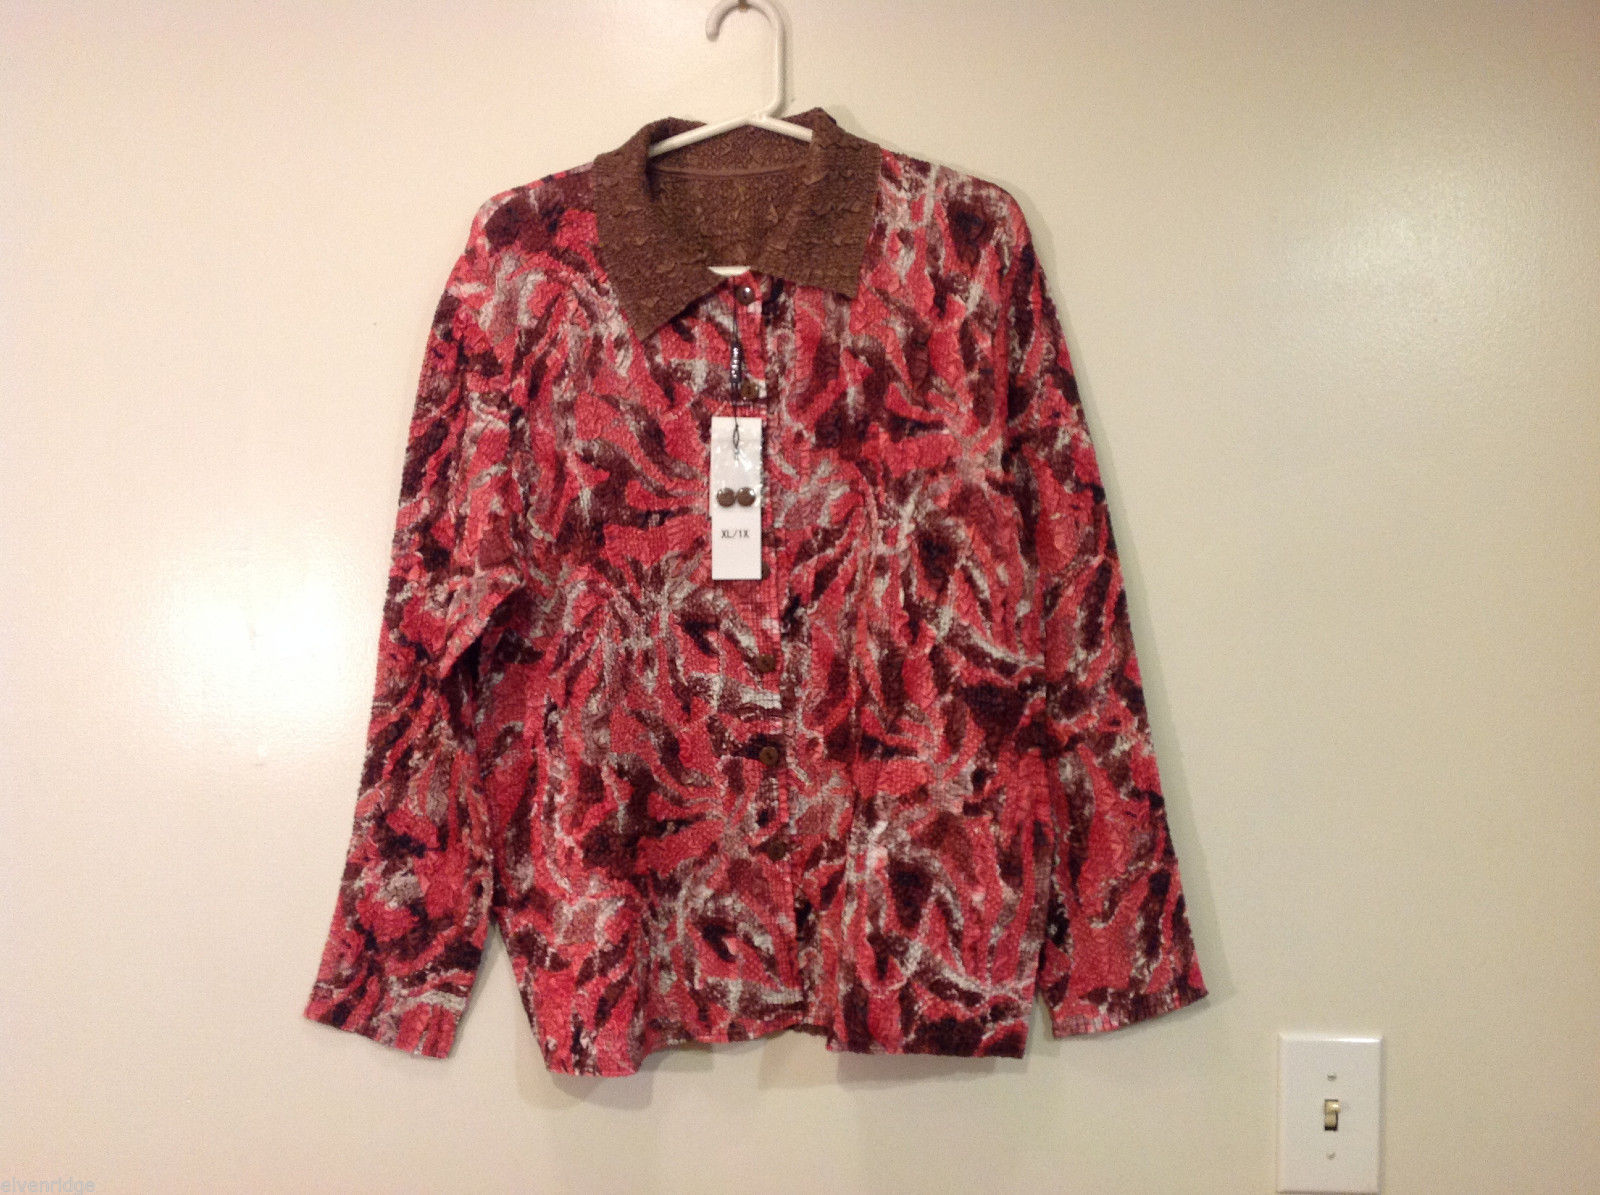 Reversible Batik Blush Pink to Solid Brown Pleated Shirt Jacket Top, Size XL-1X